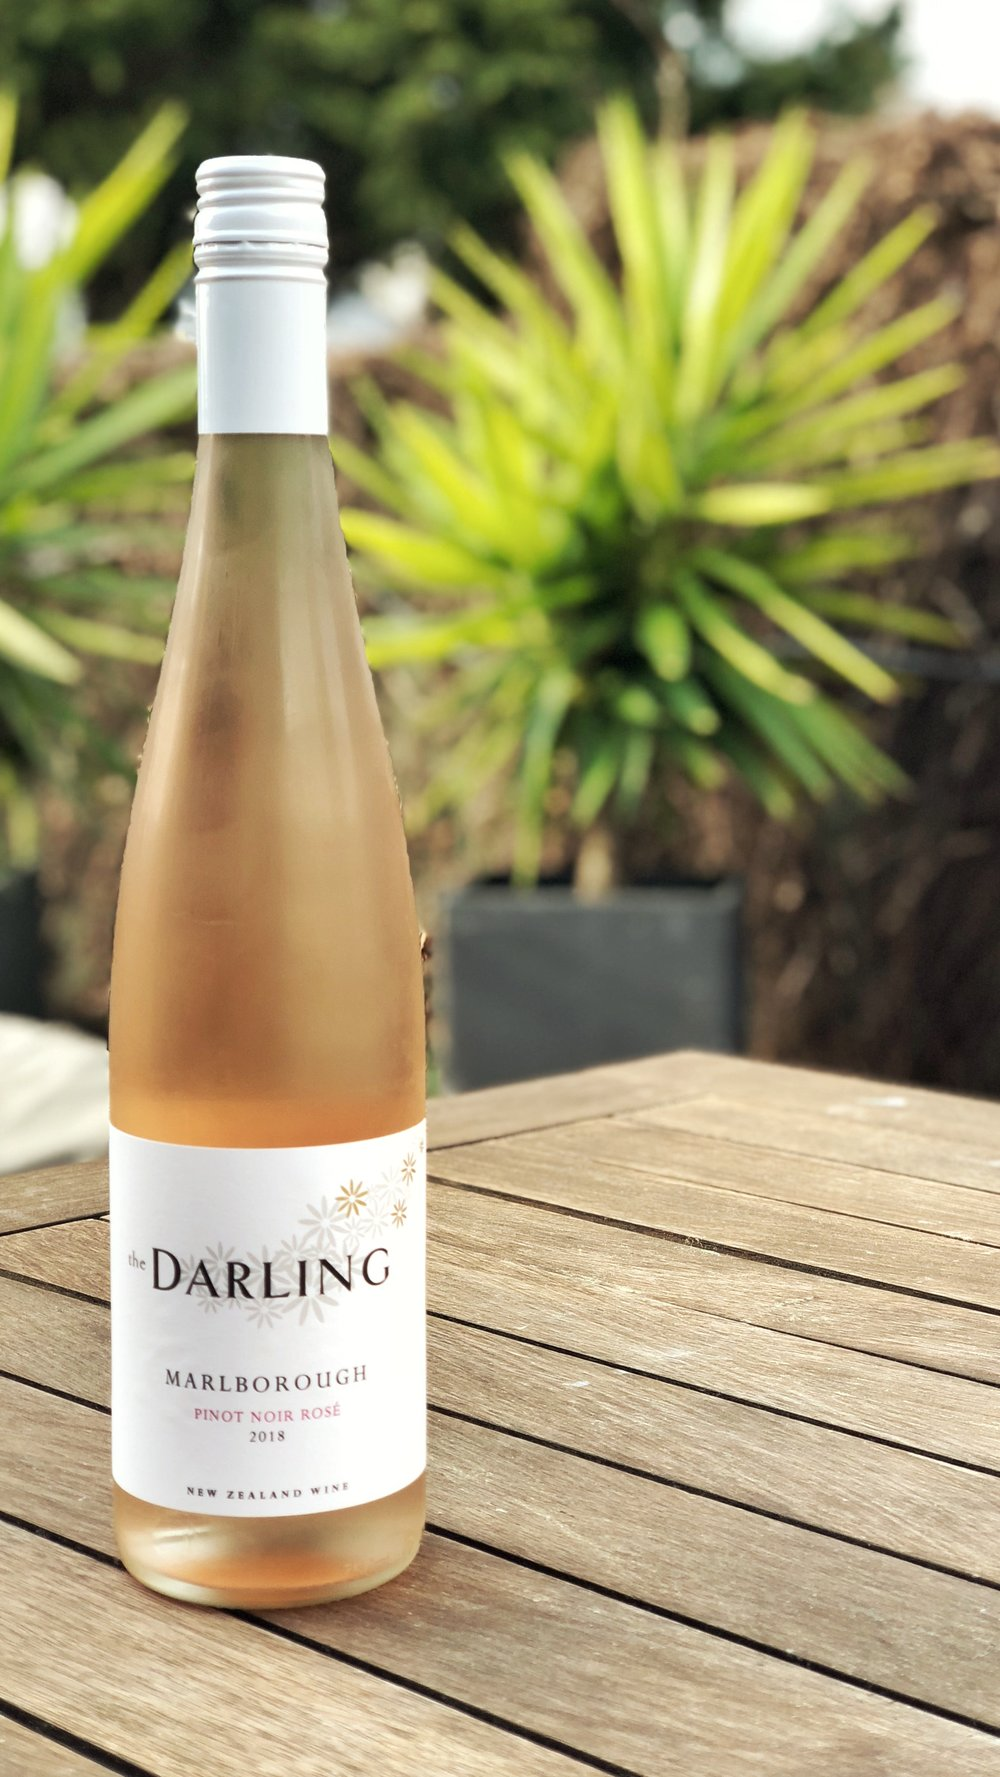 Photo: The Darling Wines